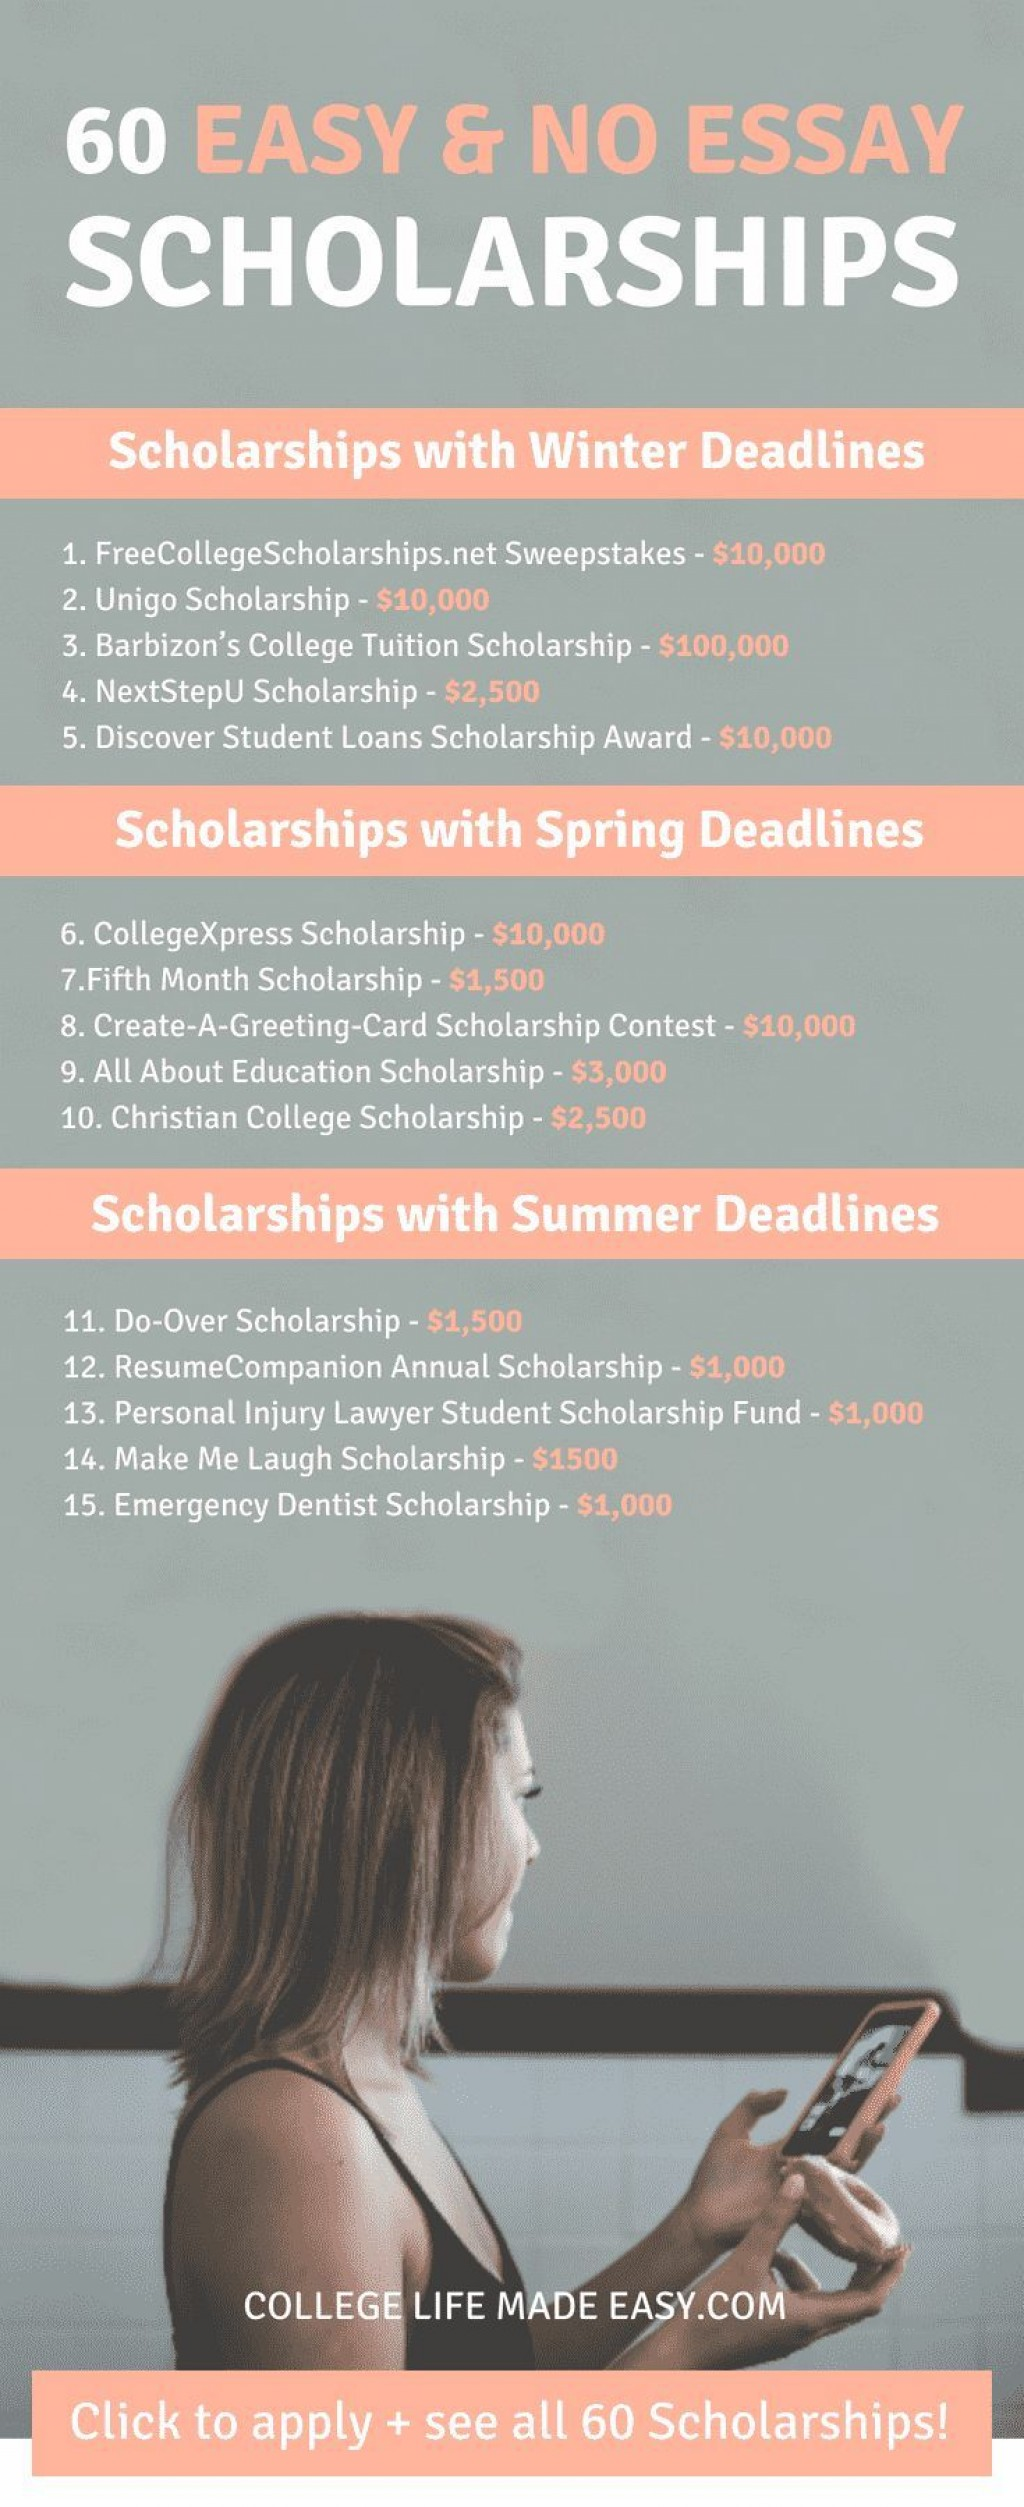 006 No Essay Scholarship Wondrous College Scholarships 2018 2019 Free Large